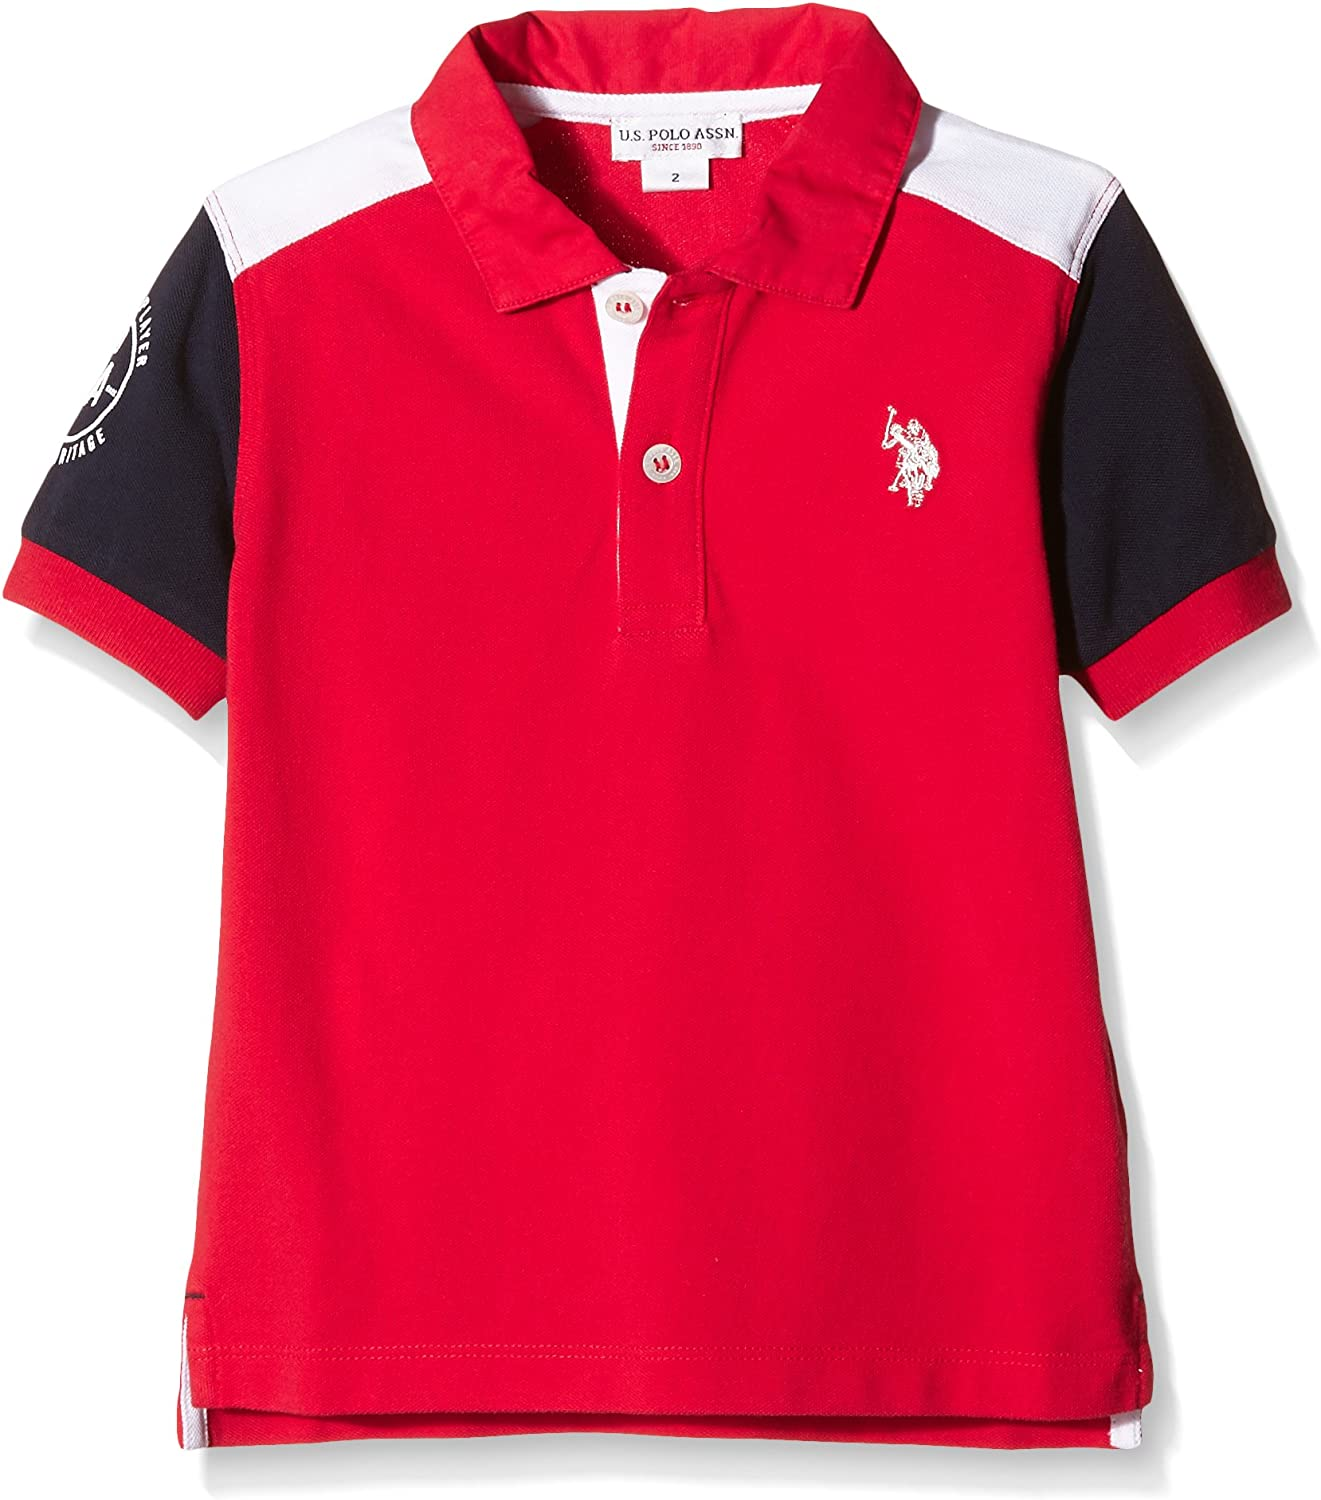 U.S. POLO ASSN. Bruce SS Polo, Bicolor Red/BLU (Bicolor Red/BLU ...